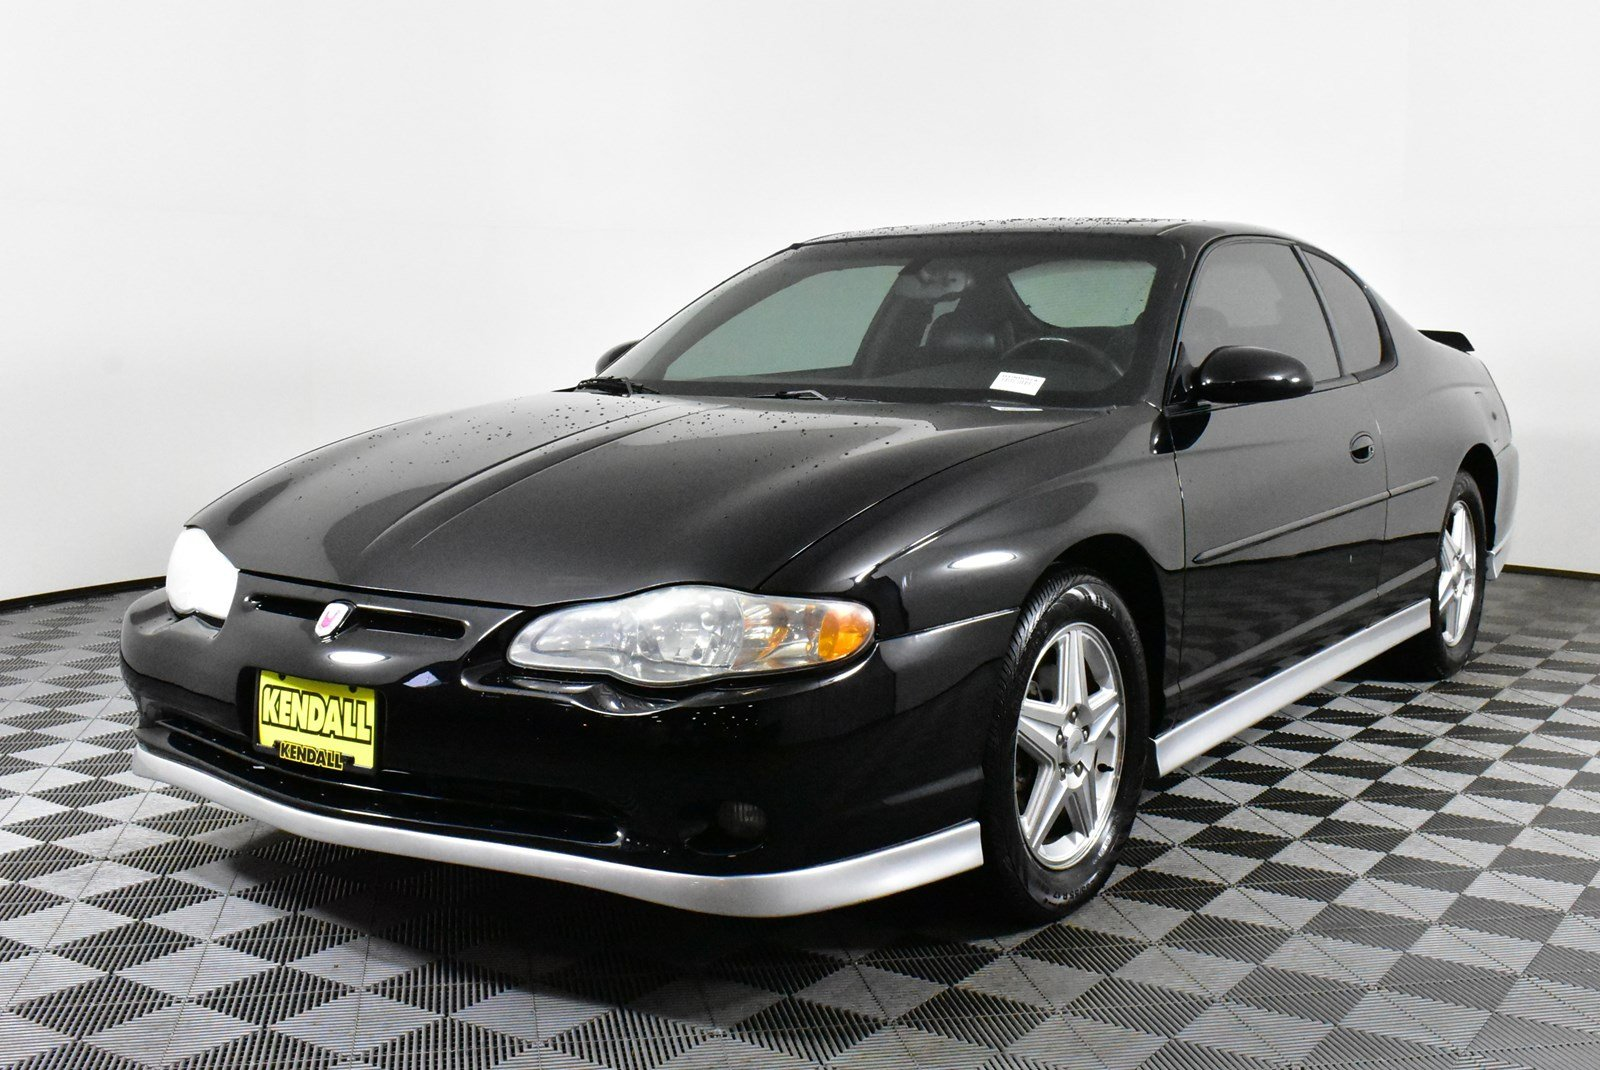 Pre-Owned 2004 Chevrolet Monte Carlo